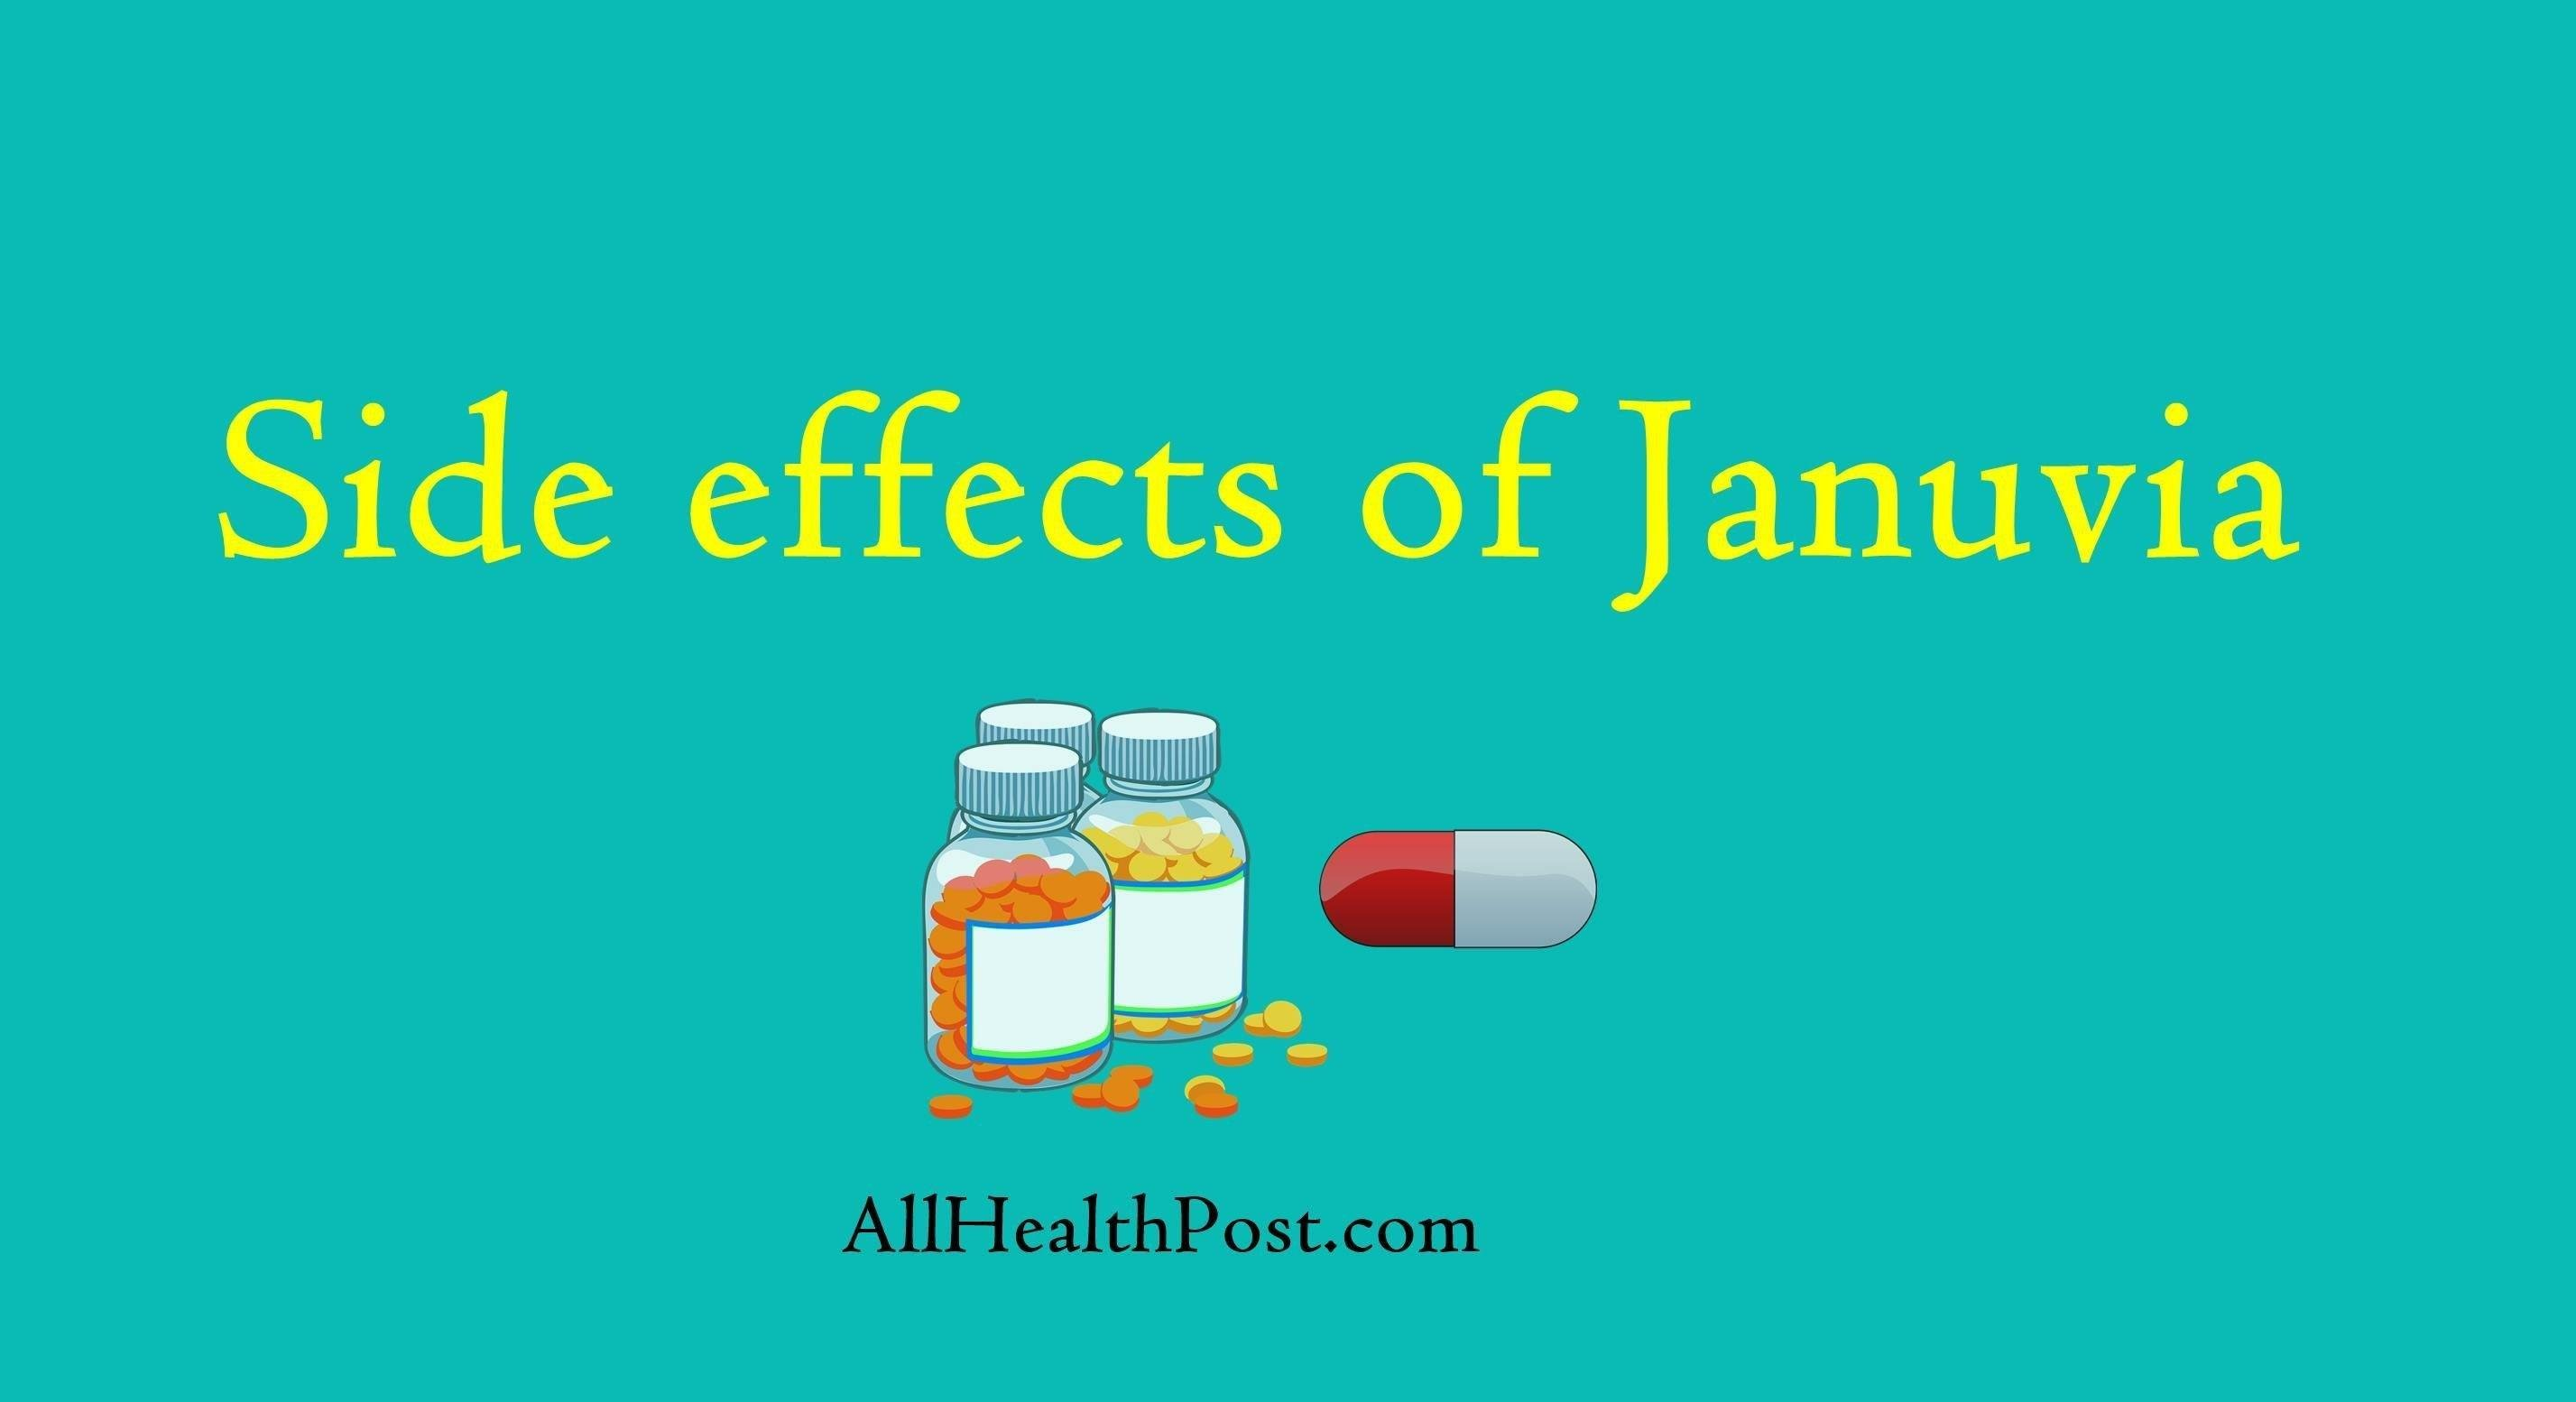 14 Common Side Effects Of Januvia (sitagliptin)